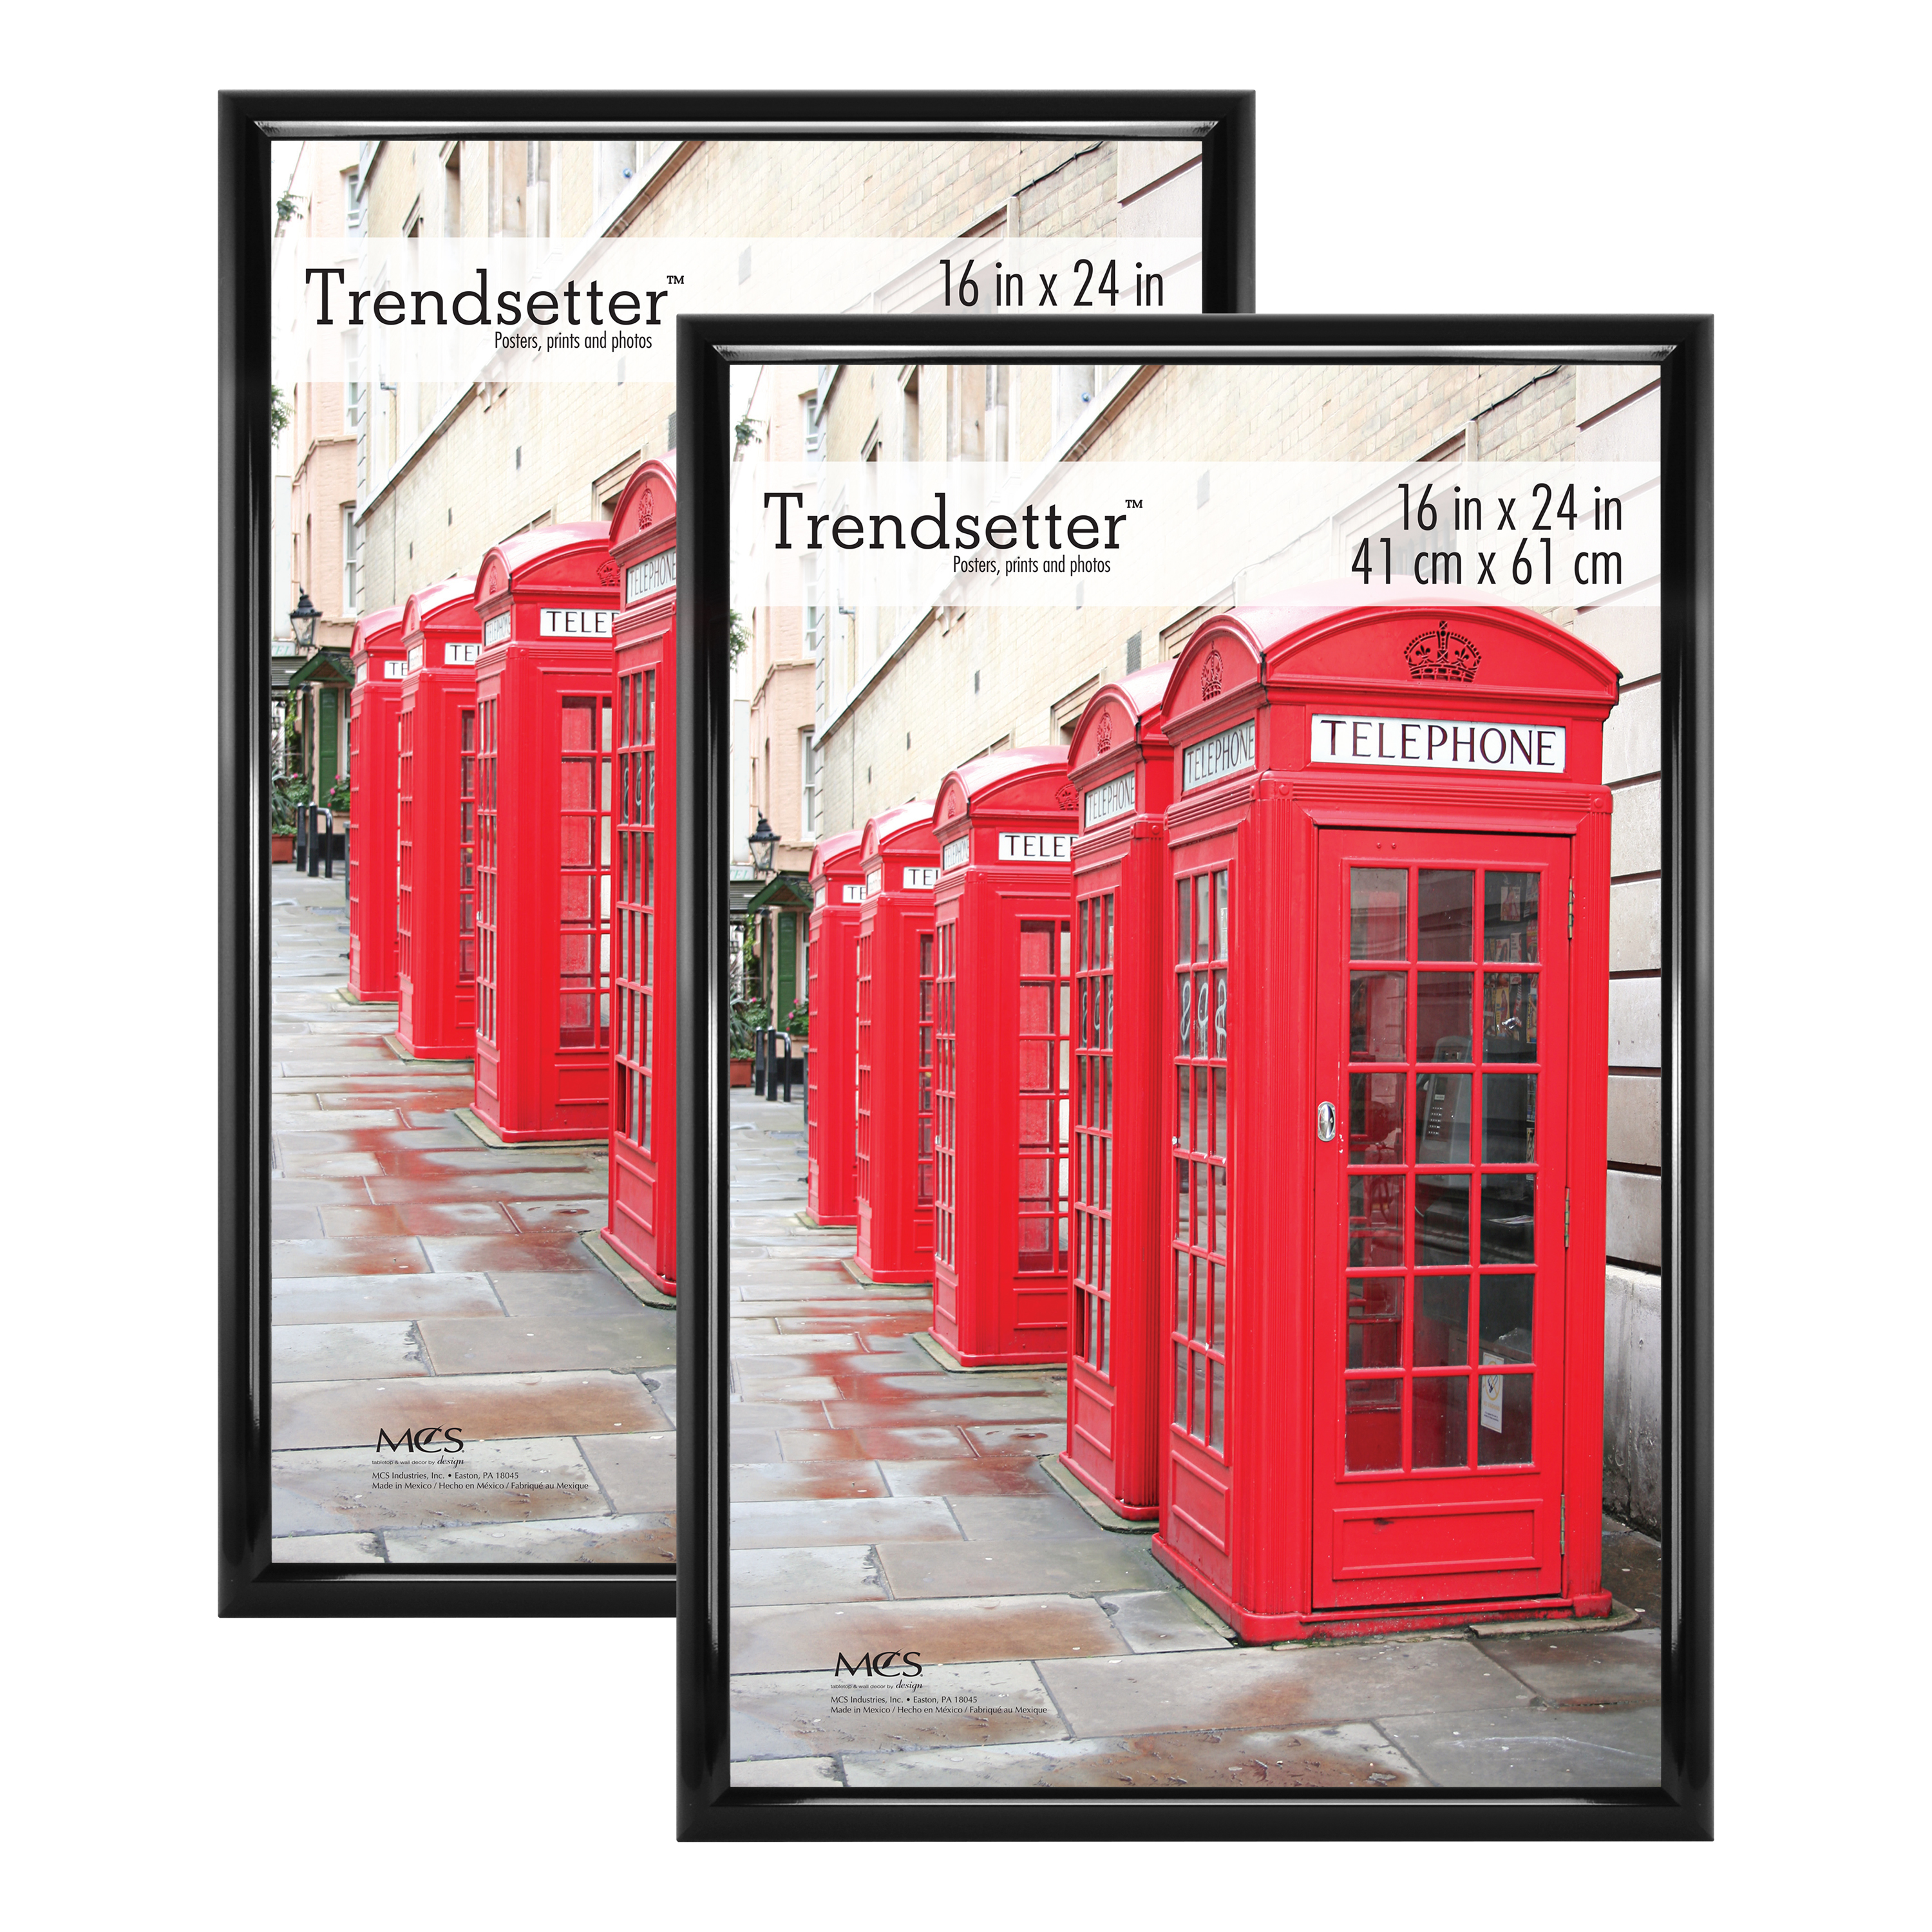 mainstays 16x24 trendsetter poster and picture frame black set of 2 walmart com